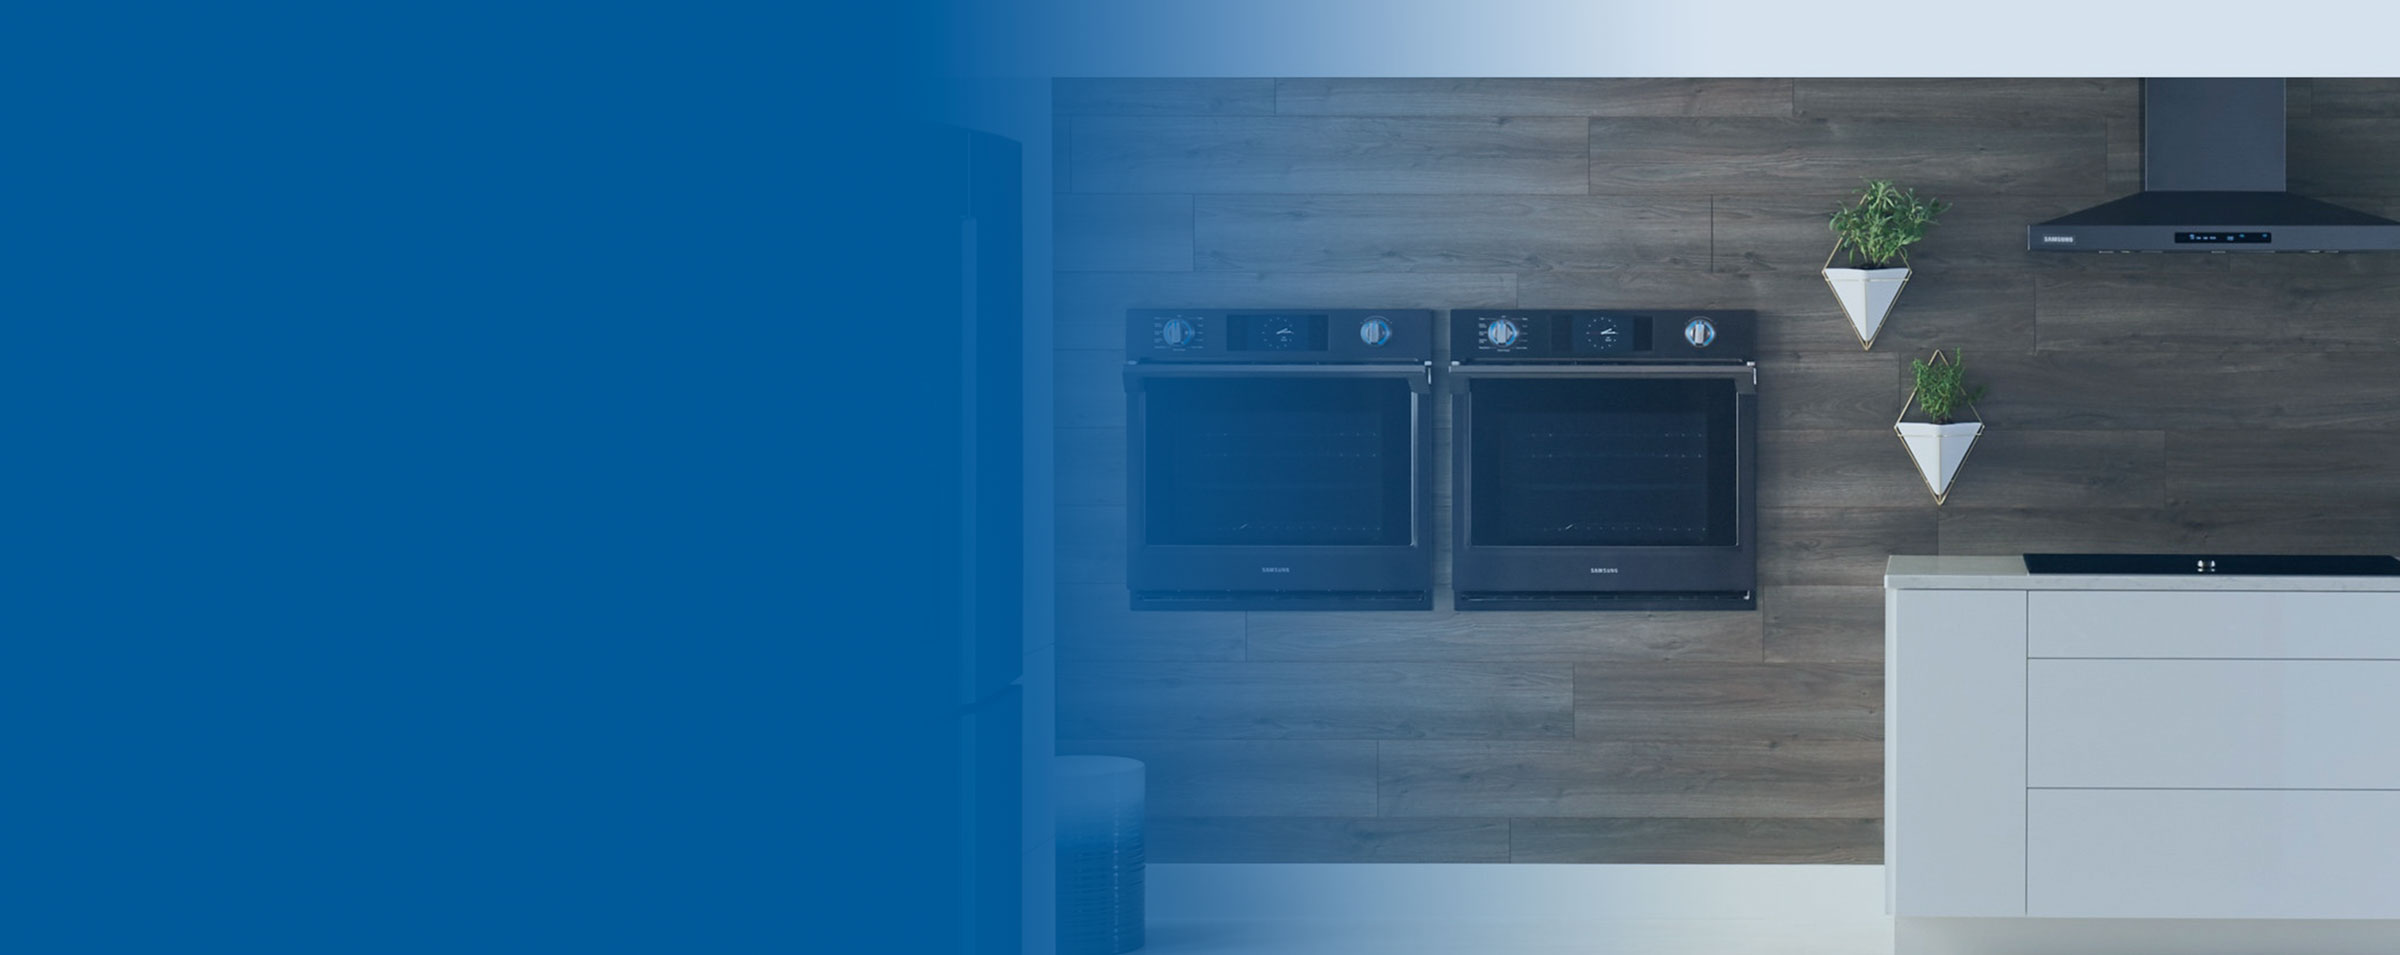 AGREN APPLIANCE NO NORWAY ME - scamcreditcards.com